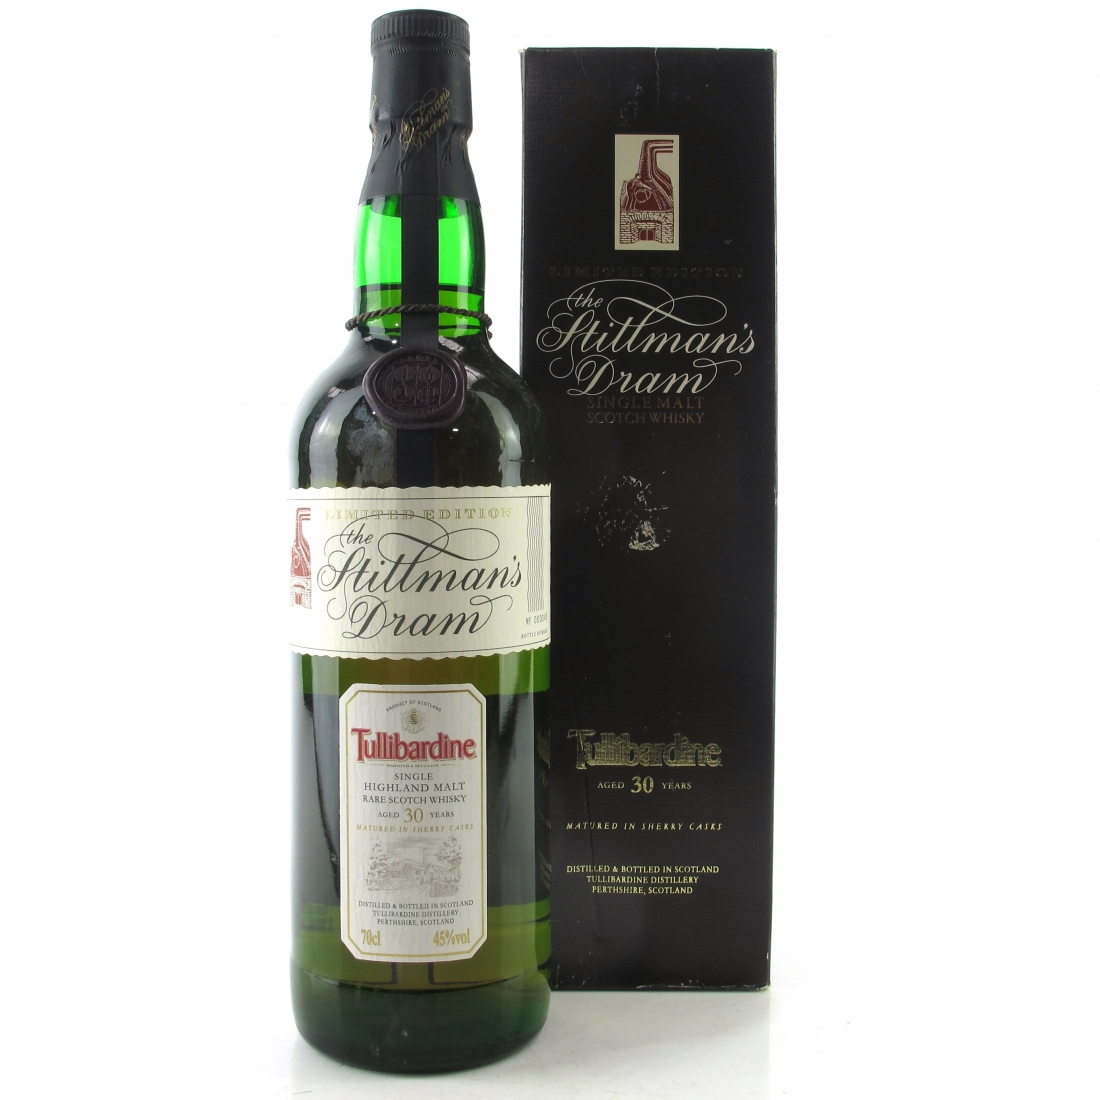 Tullibardine 30 Year Old Stillman's Dram